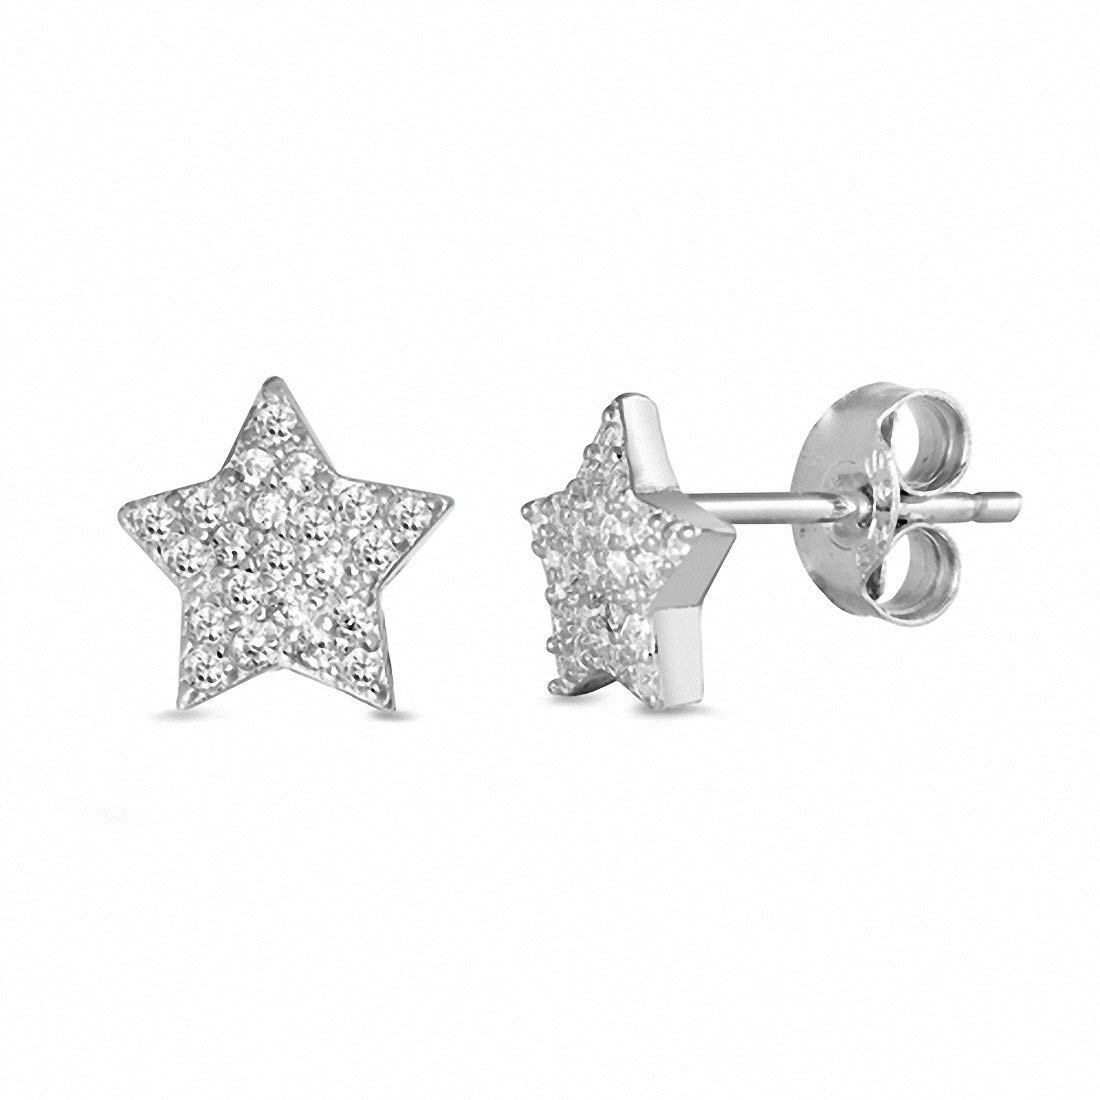 Star Stud Earrings Pave Round Cubic Zircona 925 Sterling Silver Chose Color